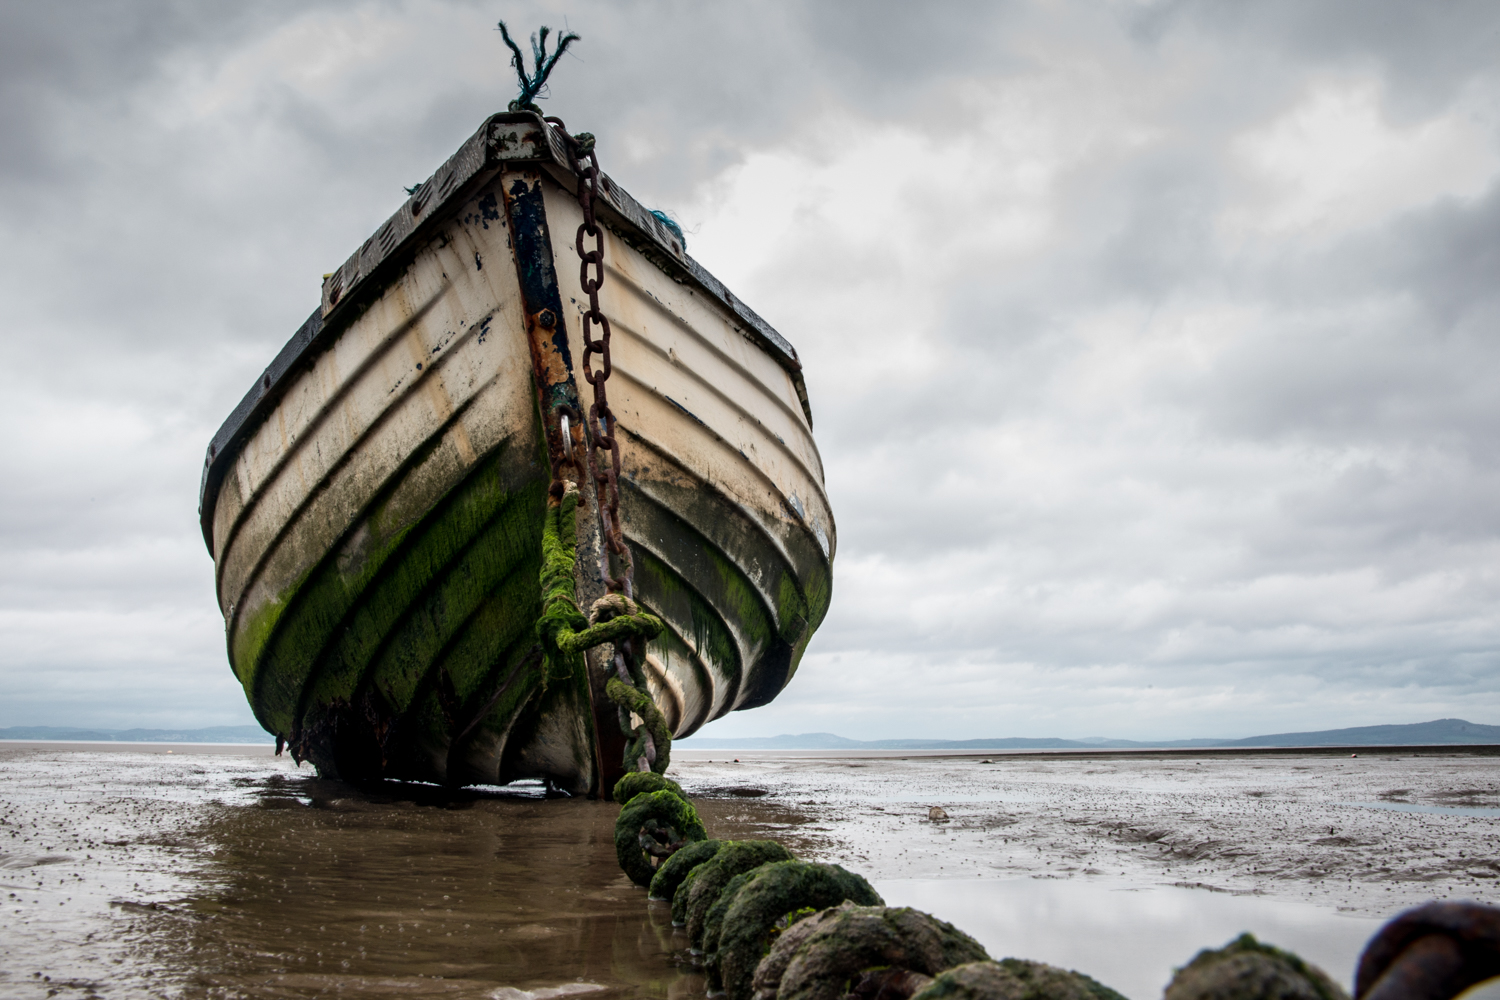 A Hull full of Stories